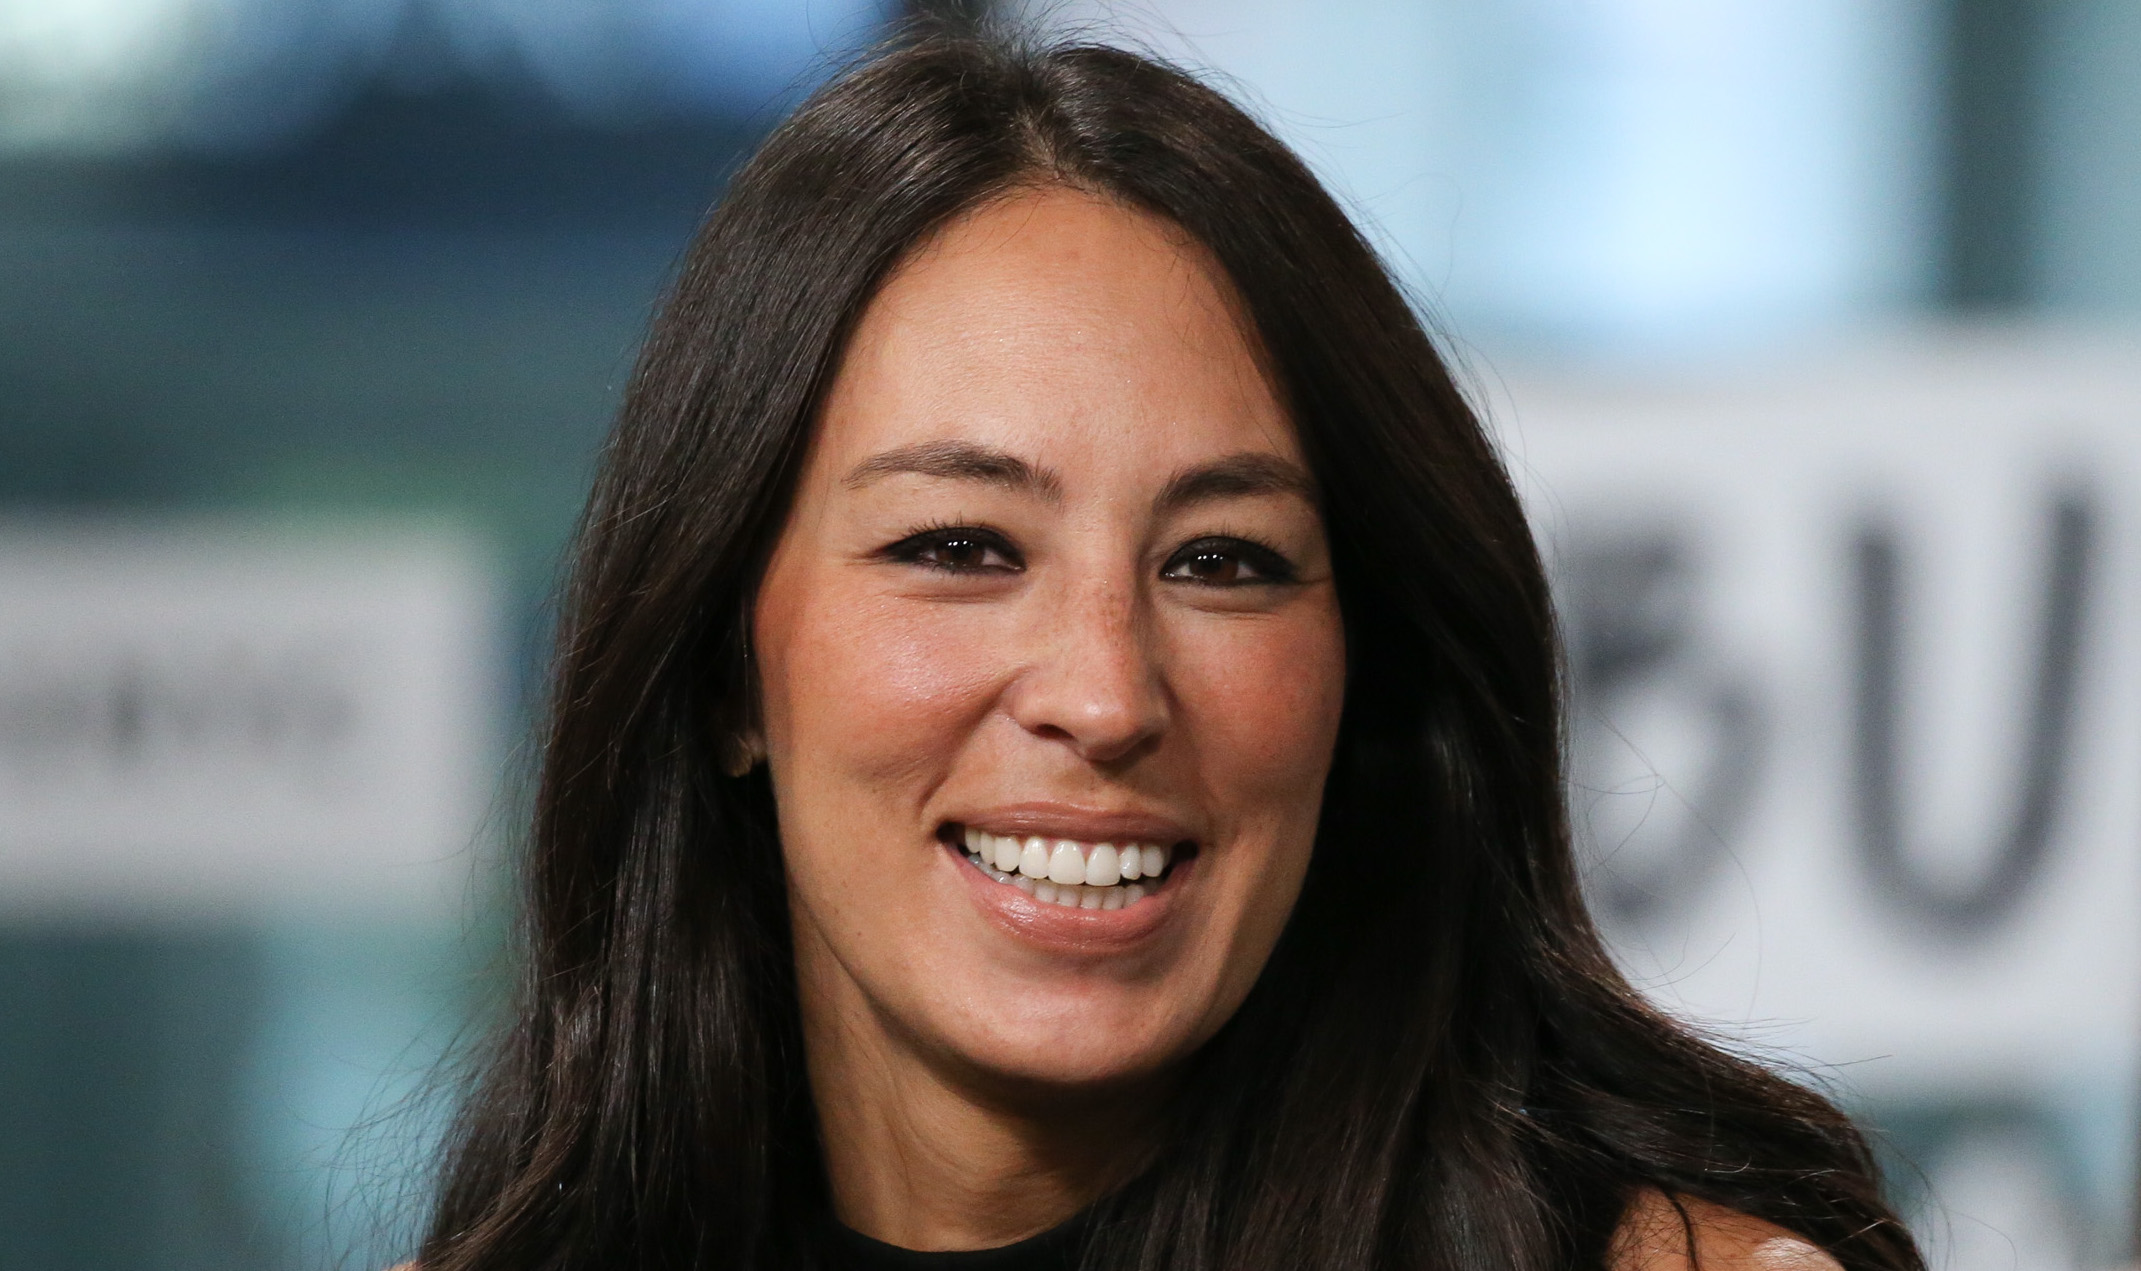 Joanna Gaines Ethnicity The Fixer Upper Star Is Not Native American